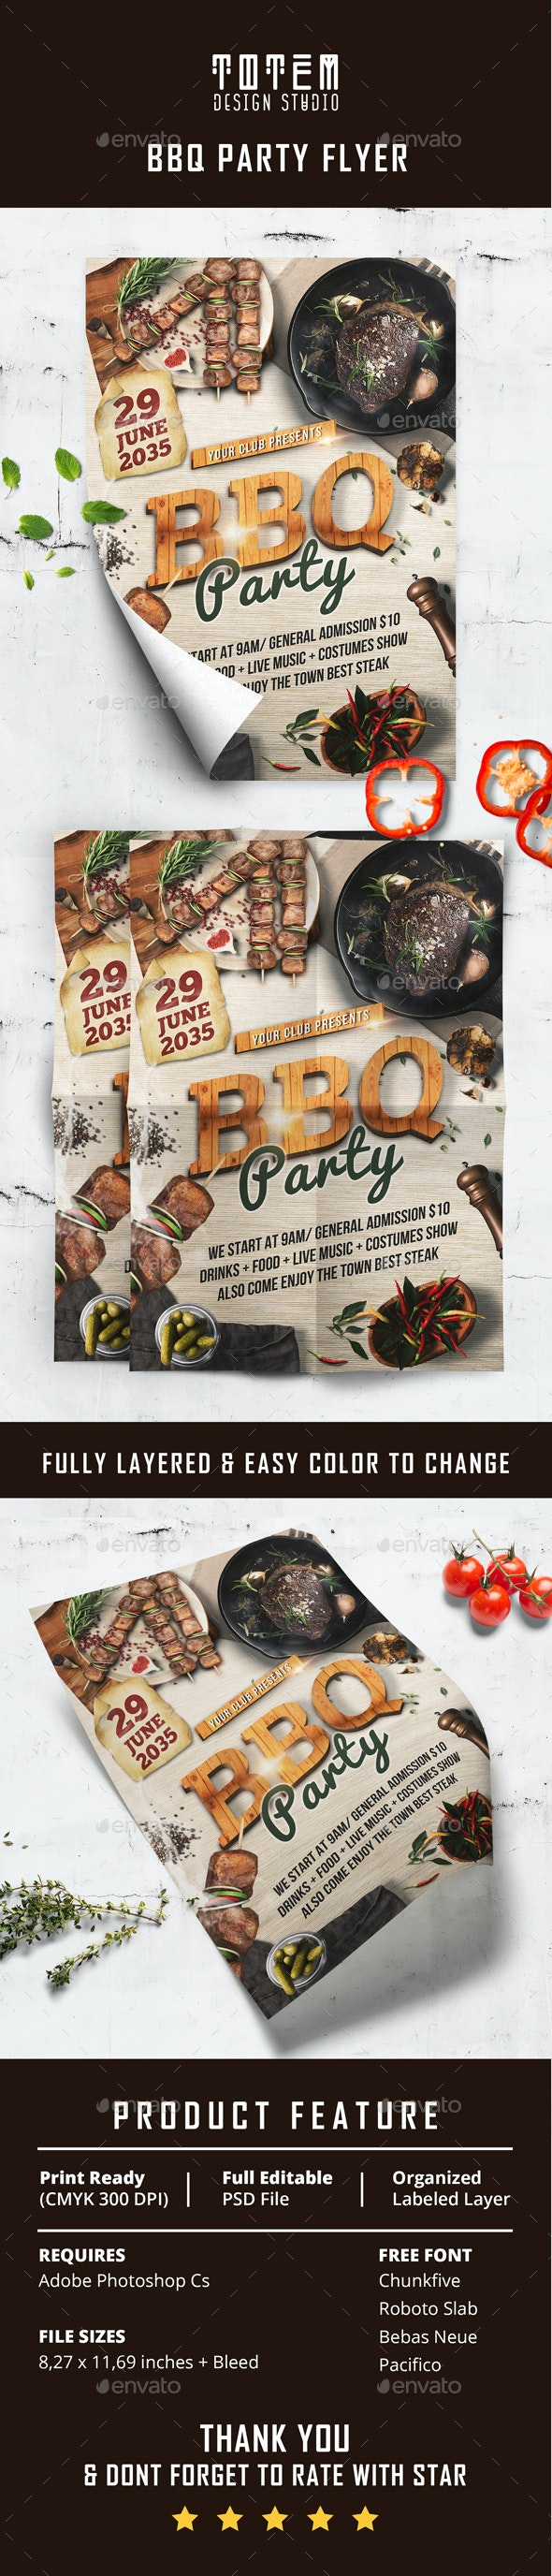 BBQ Party Flyer - Print Templates